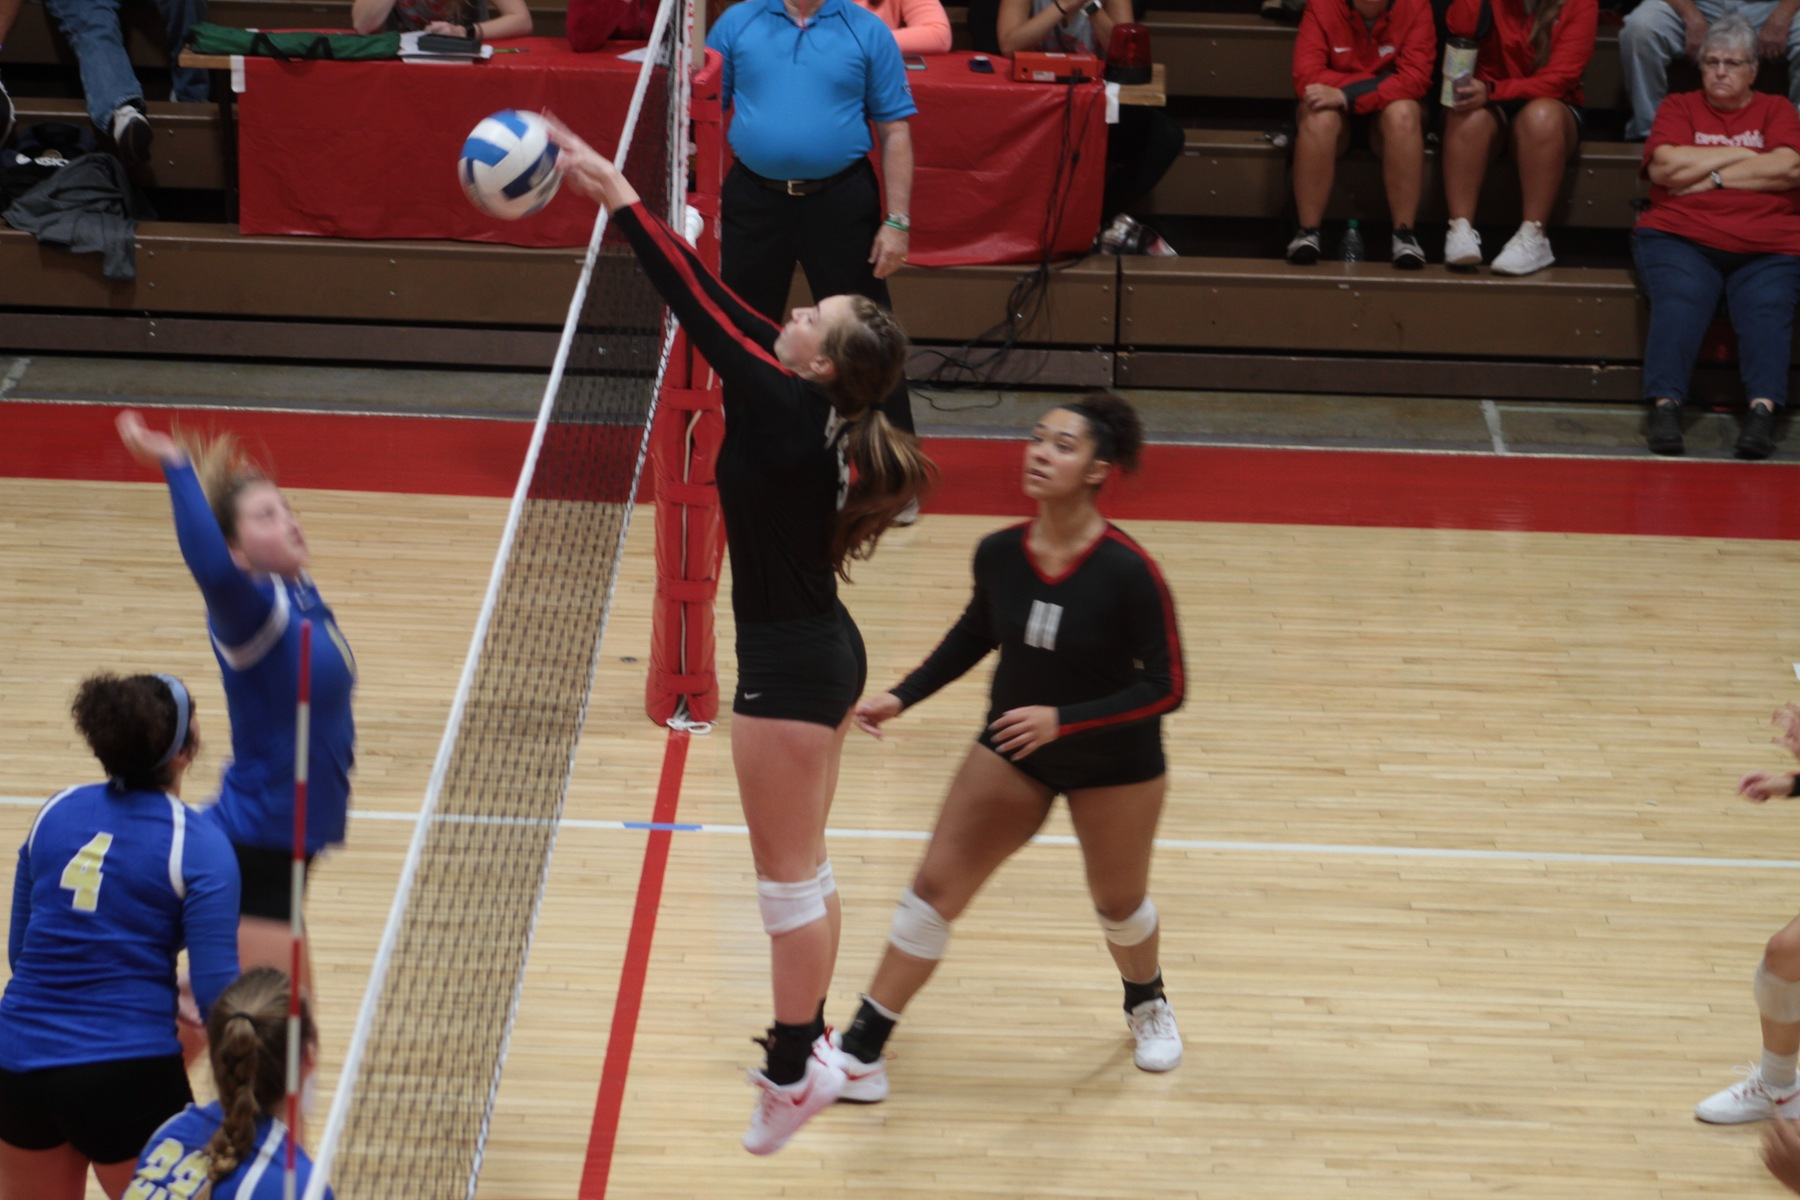 Back at #1, Red Ravens Sweep NEO